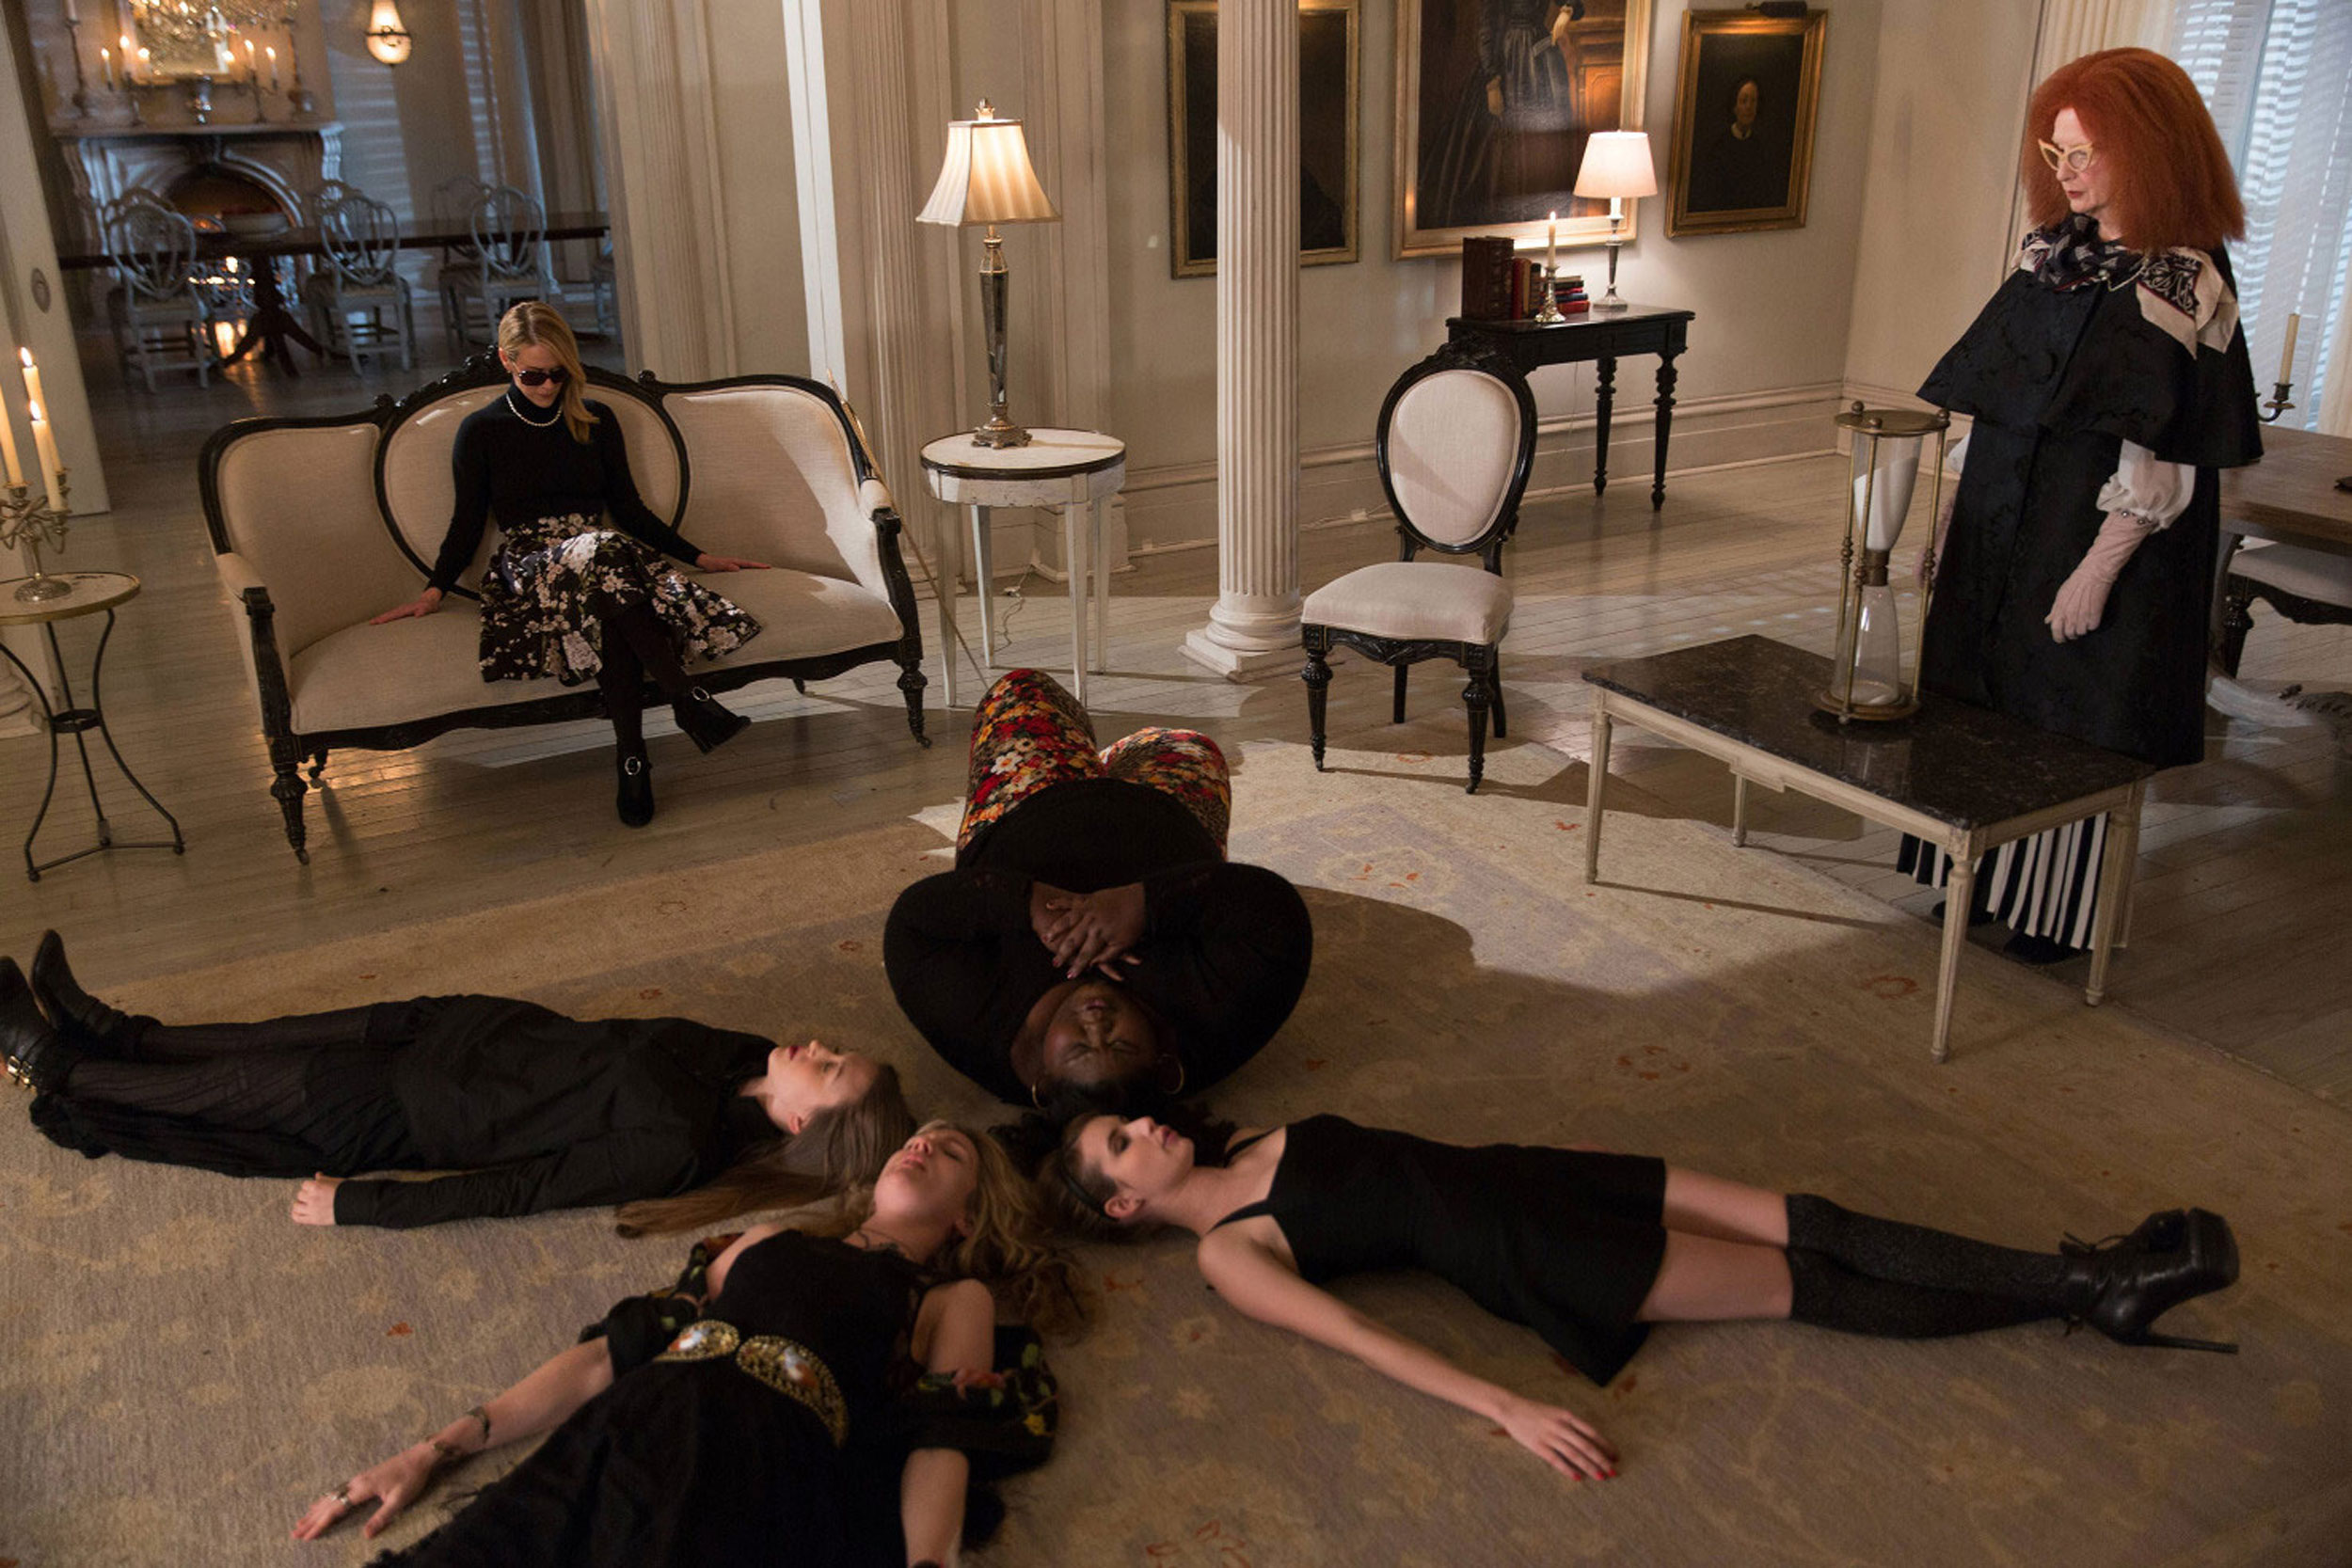 Last week Ryan Murphy announced that the next installment of American Horror Story would be a crossover of season 1s Murder House and season 3s Coven